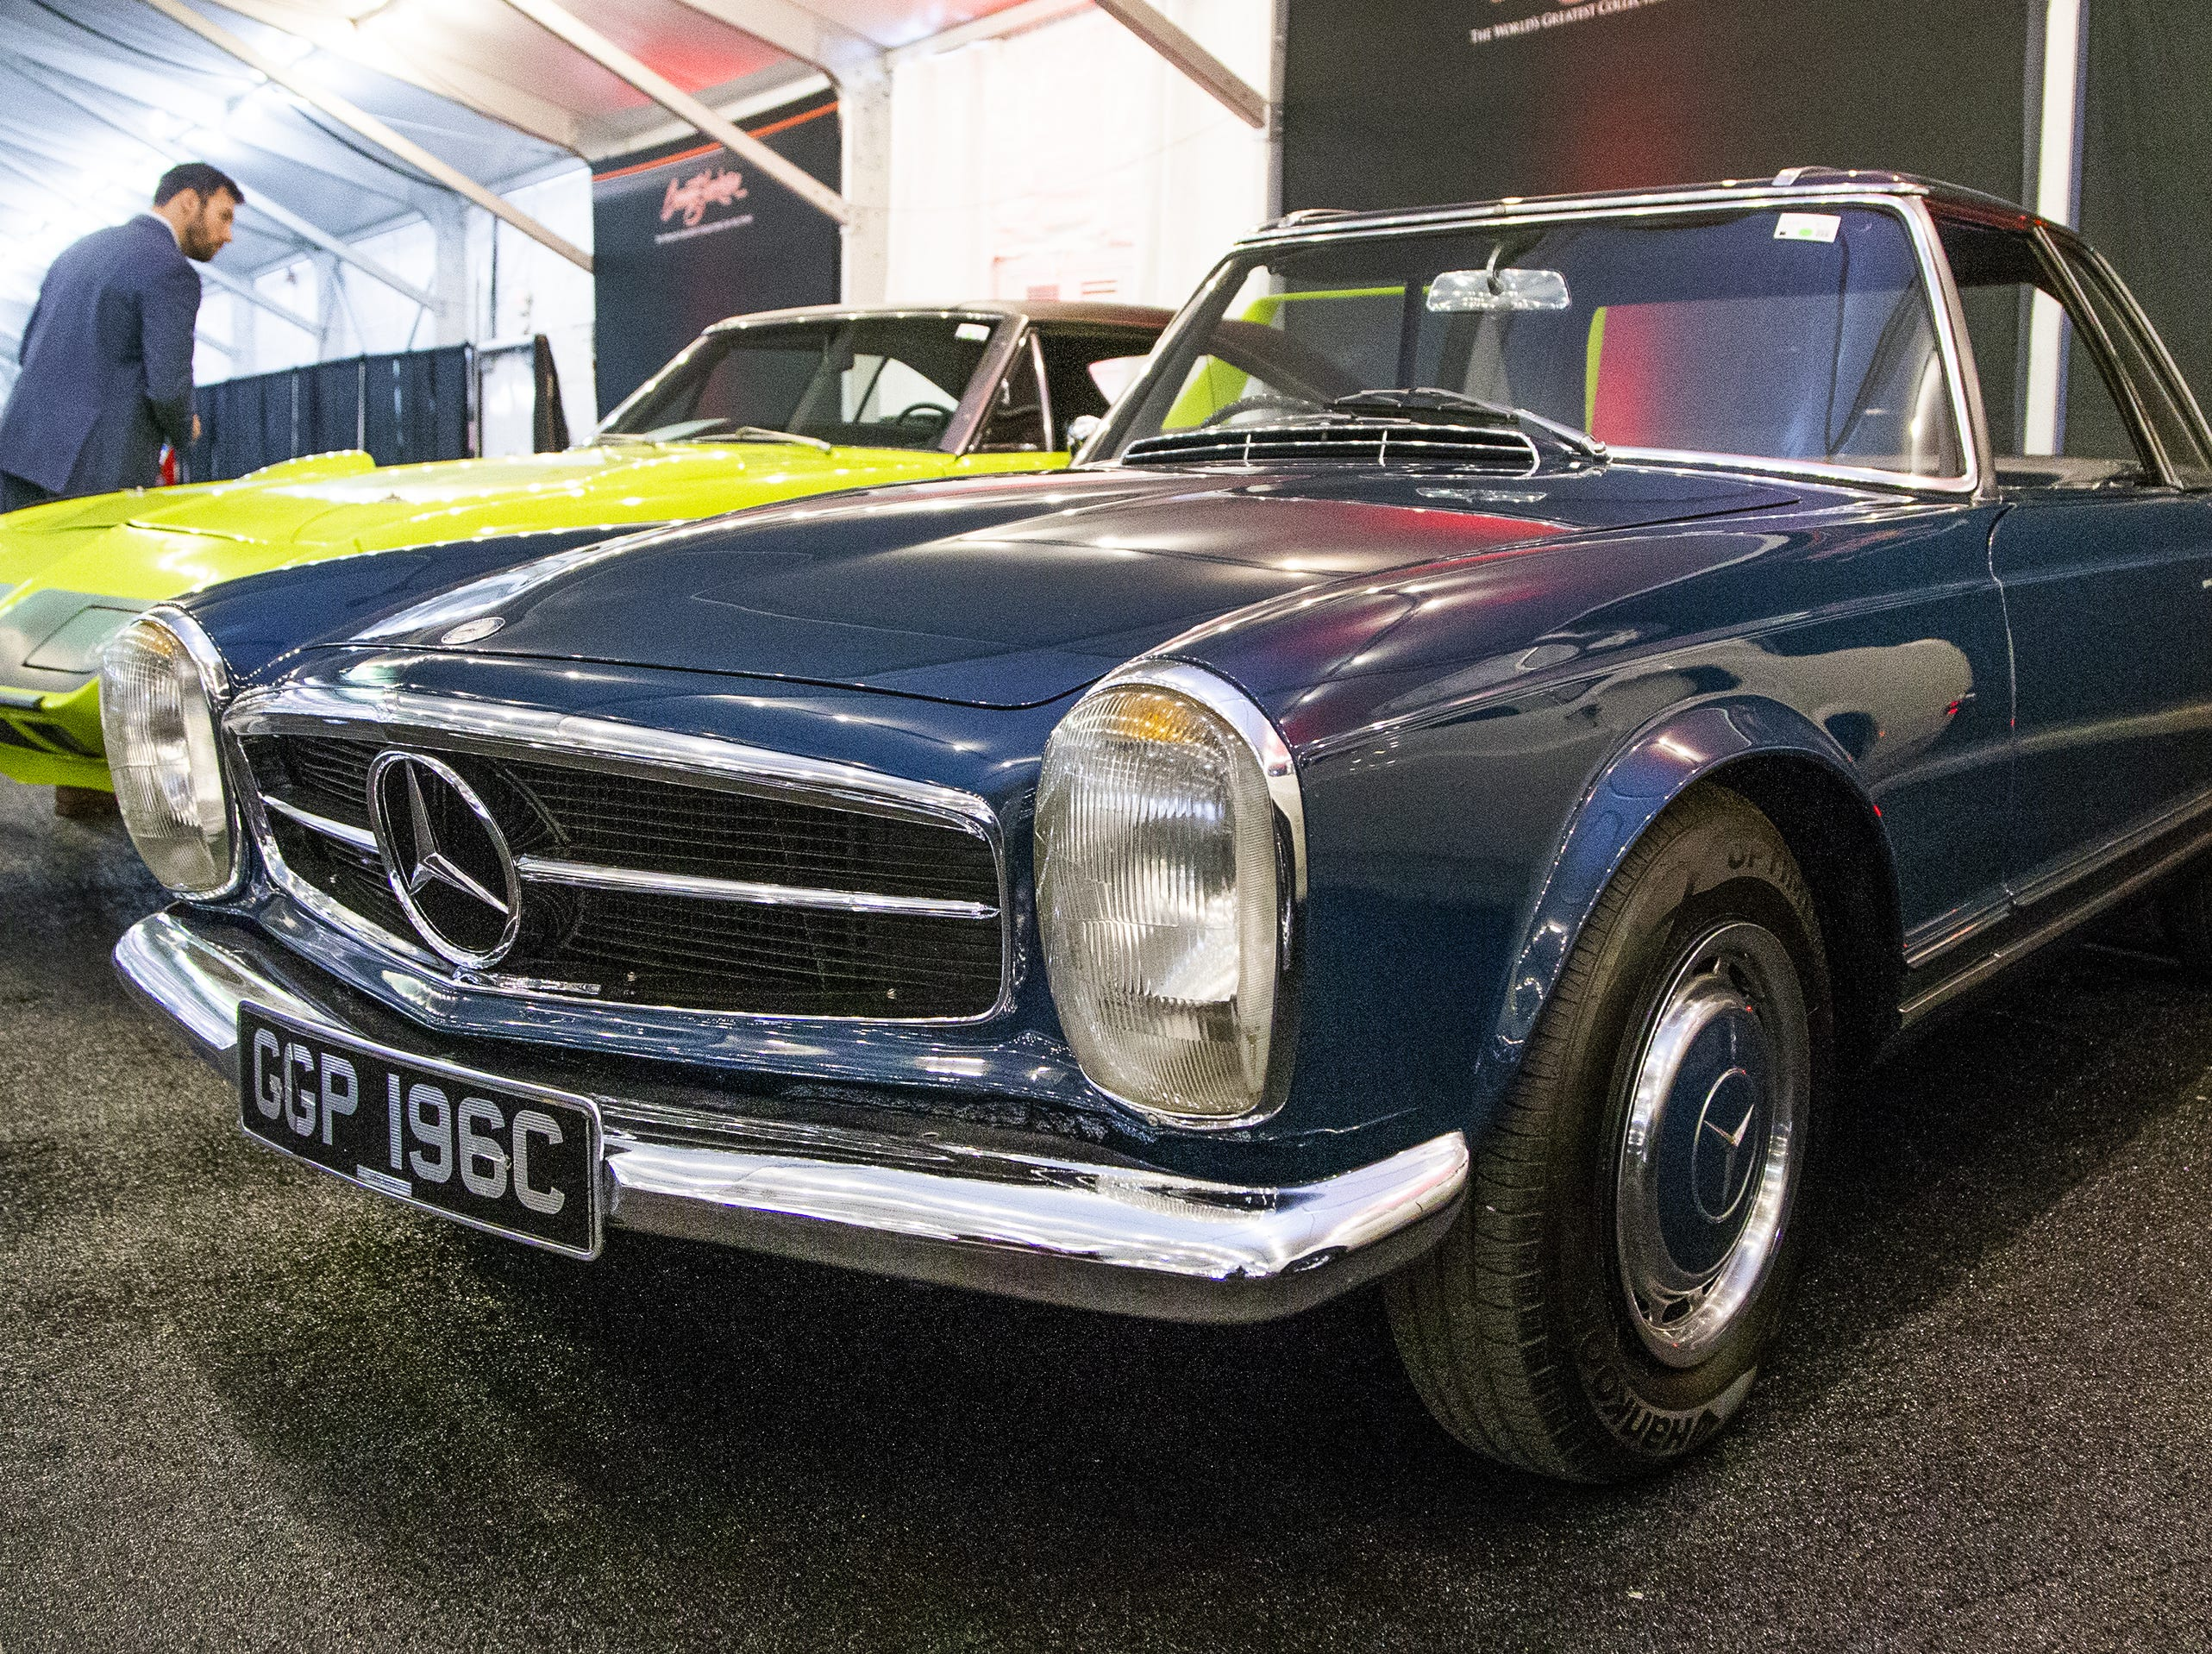 This 1965 Mercedes-Benz 230 SL Roadster, once owned by John Lennon, will be auctioned off at the  48th Annual Barrett-Jackson Scottsdale Collector Car Auction, which runs January 12-20 at WestWorld.